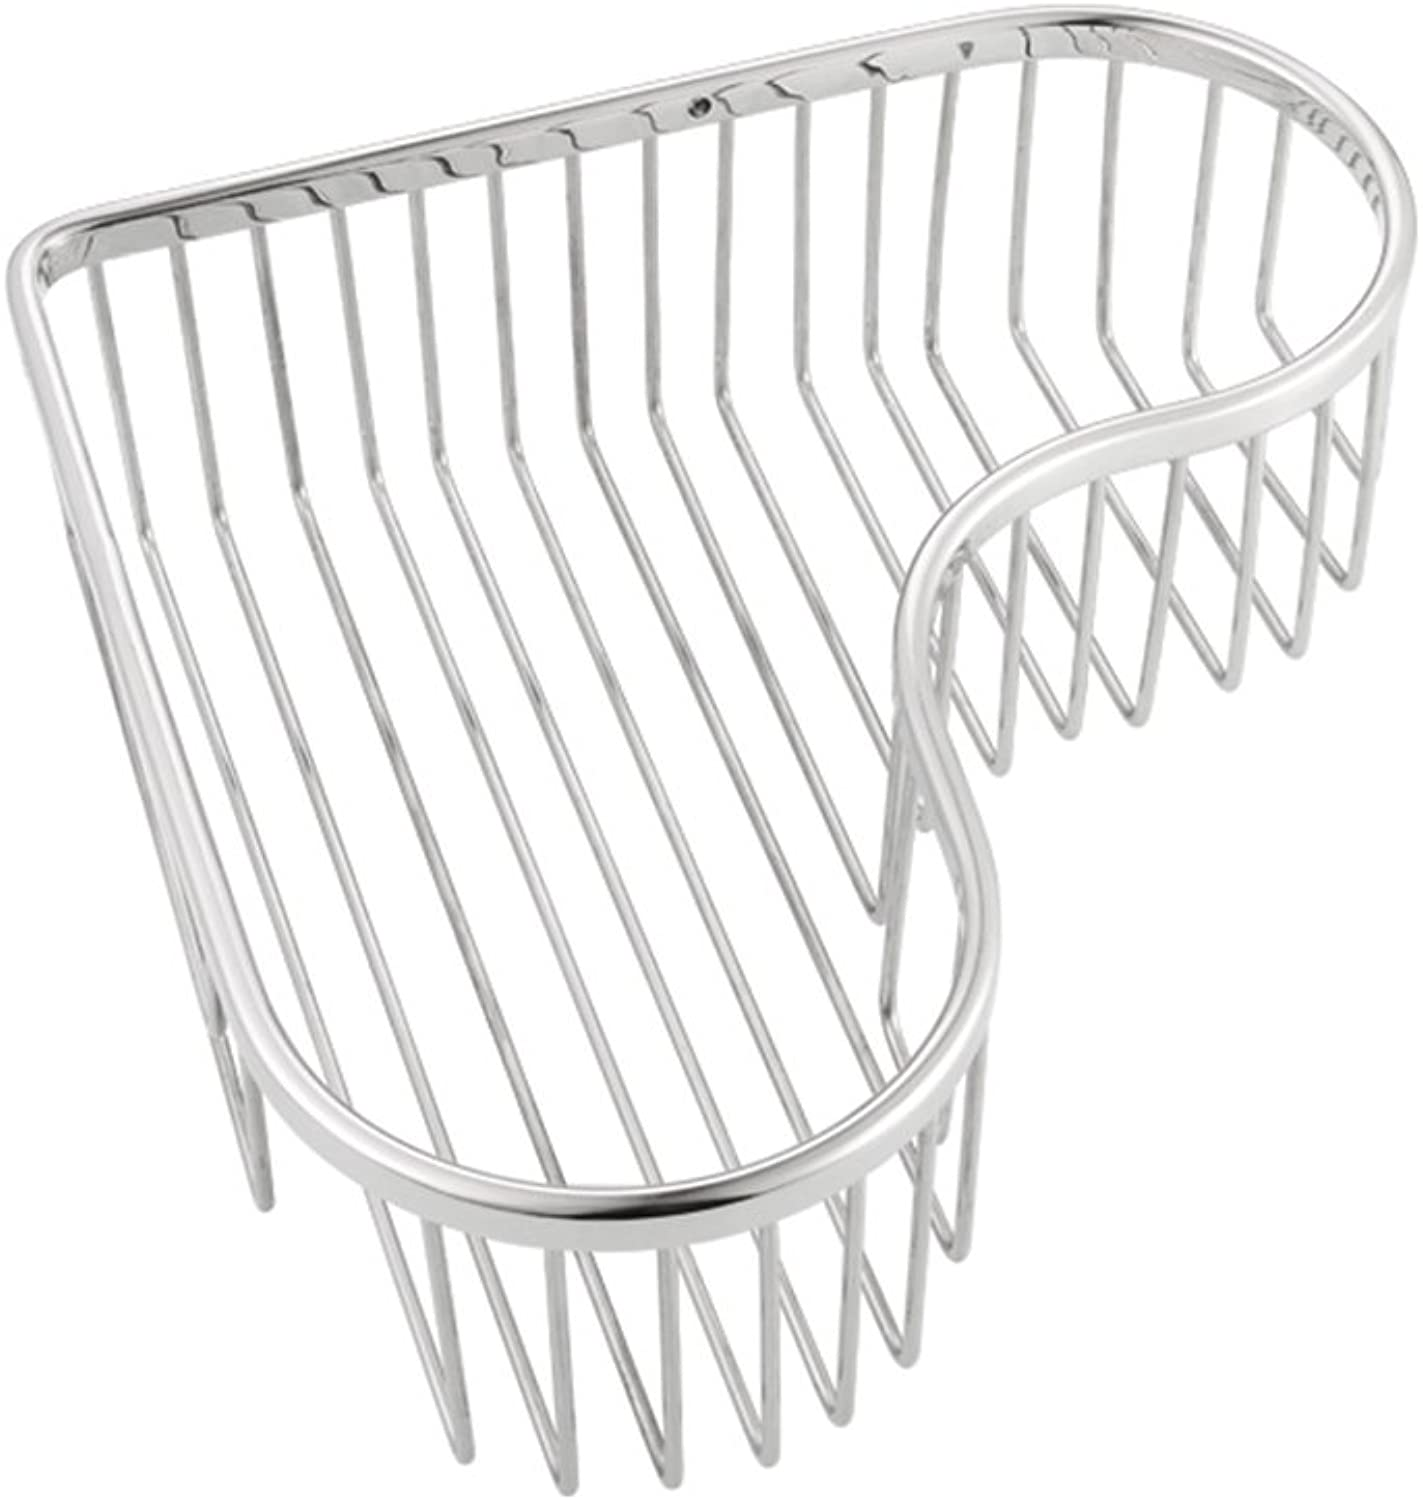 SYF Stainless Steel Bathroom Hanging Basket Items Placed Rack Heart-Shaped Storage Basket A+